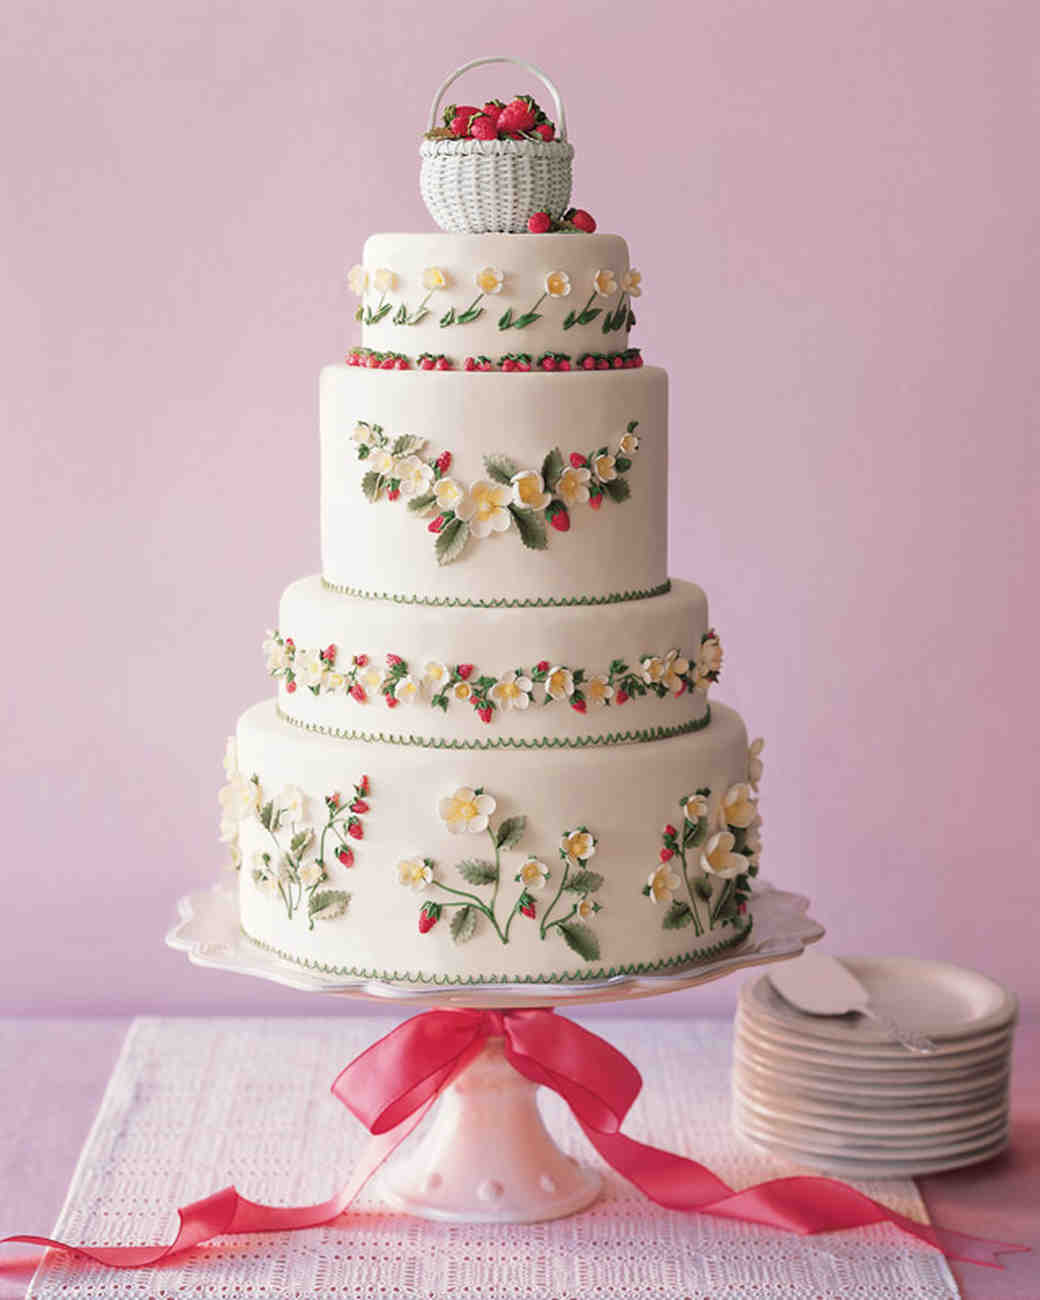 Wedding Cakes With Flowers On Top: 45 Wedding Cakes With Sugar Flowers That Look Stunningly